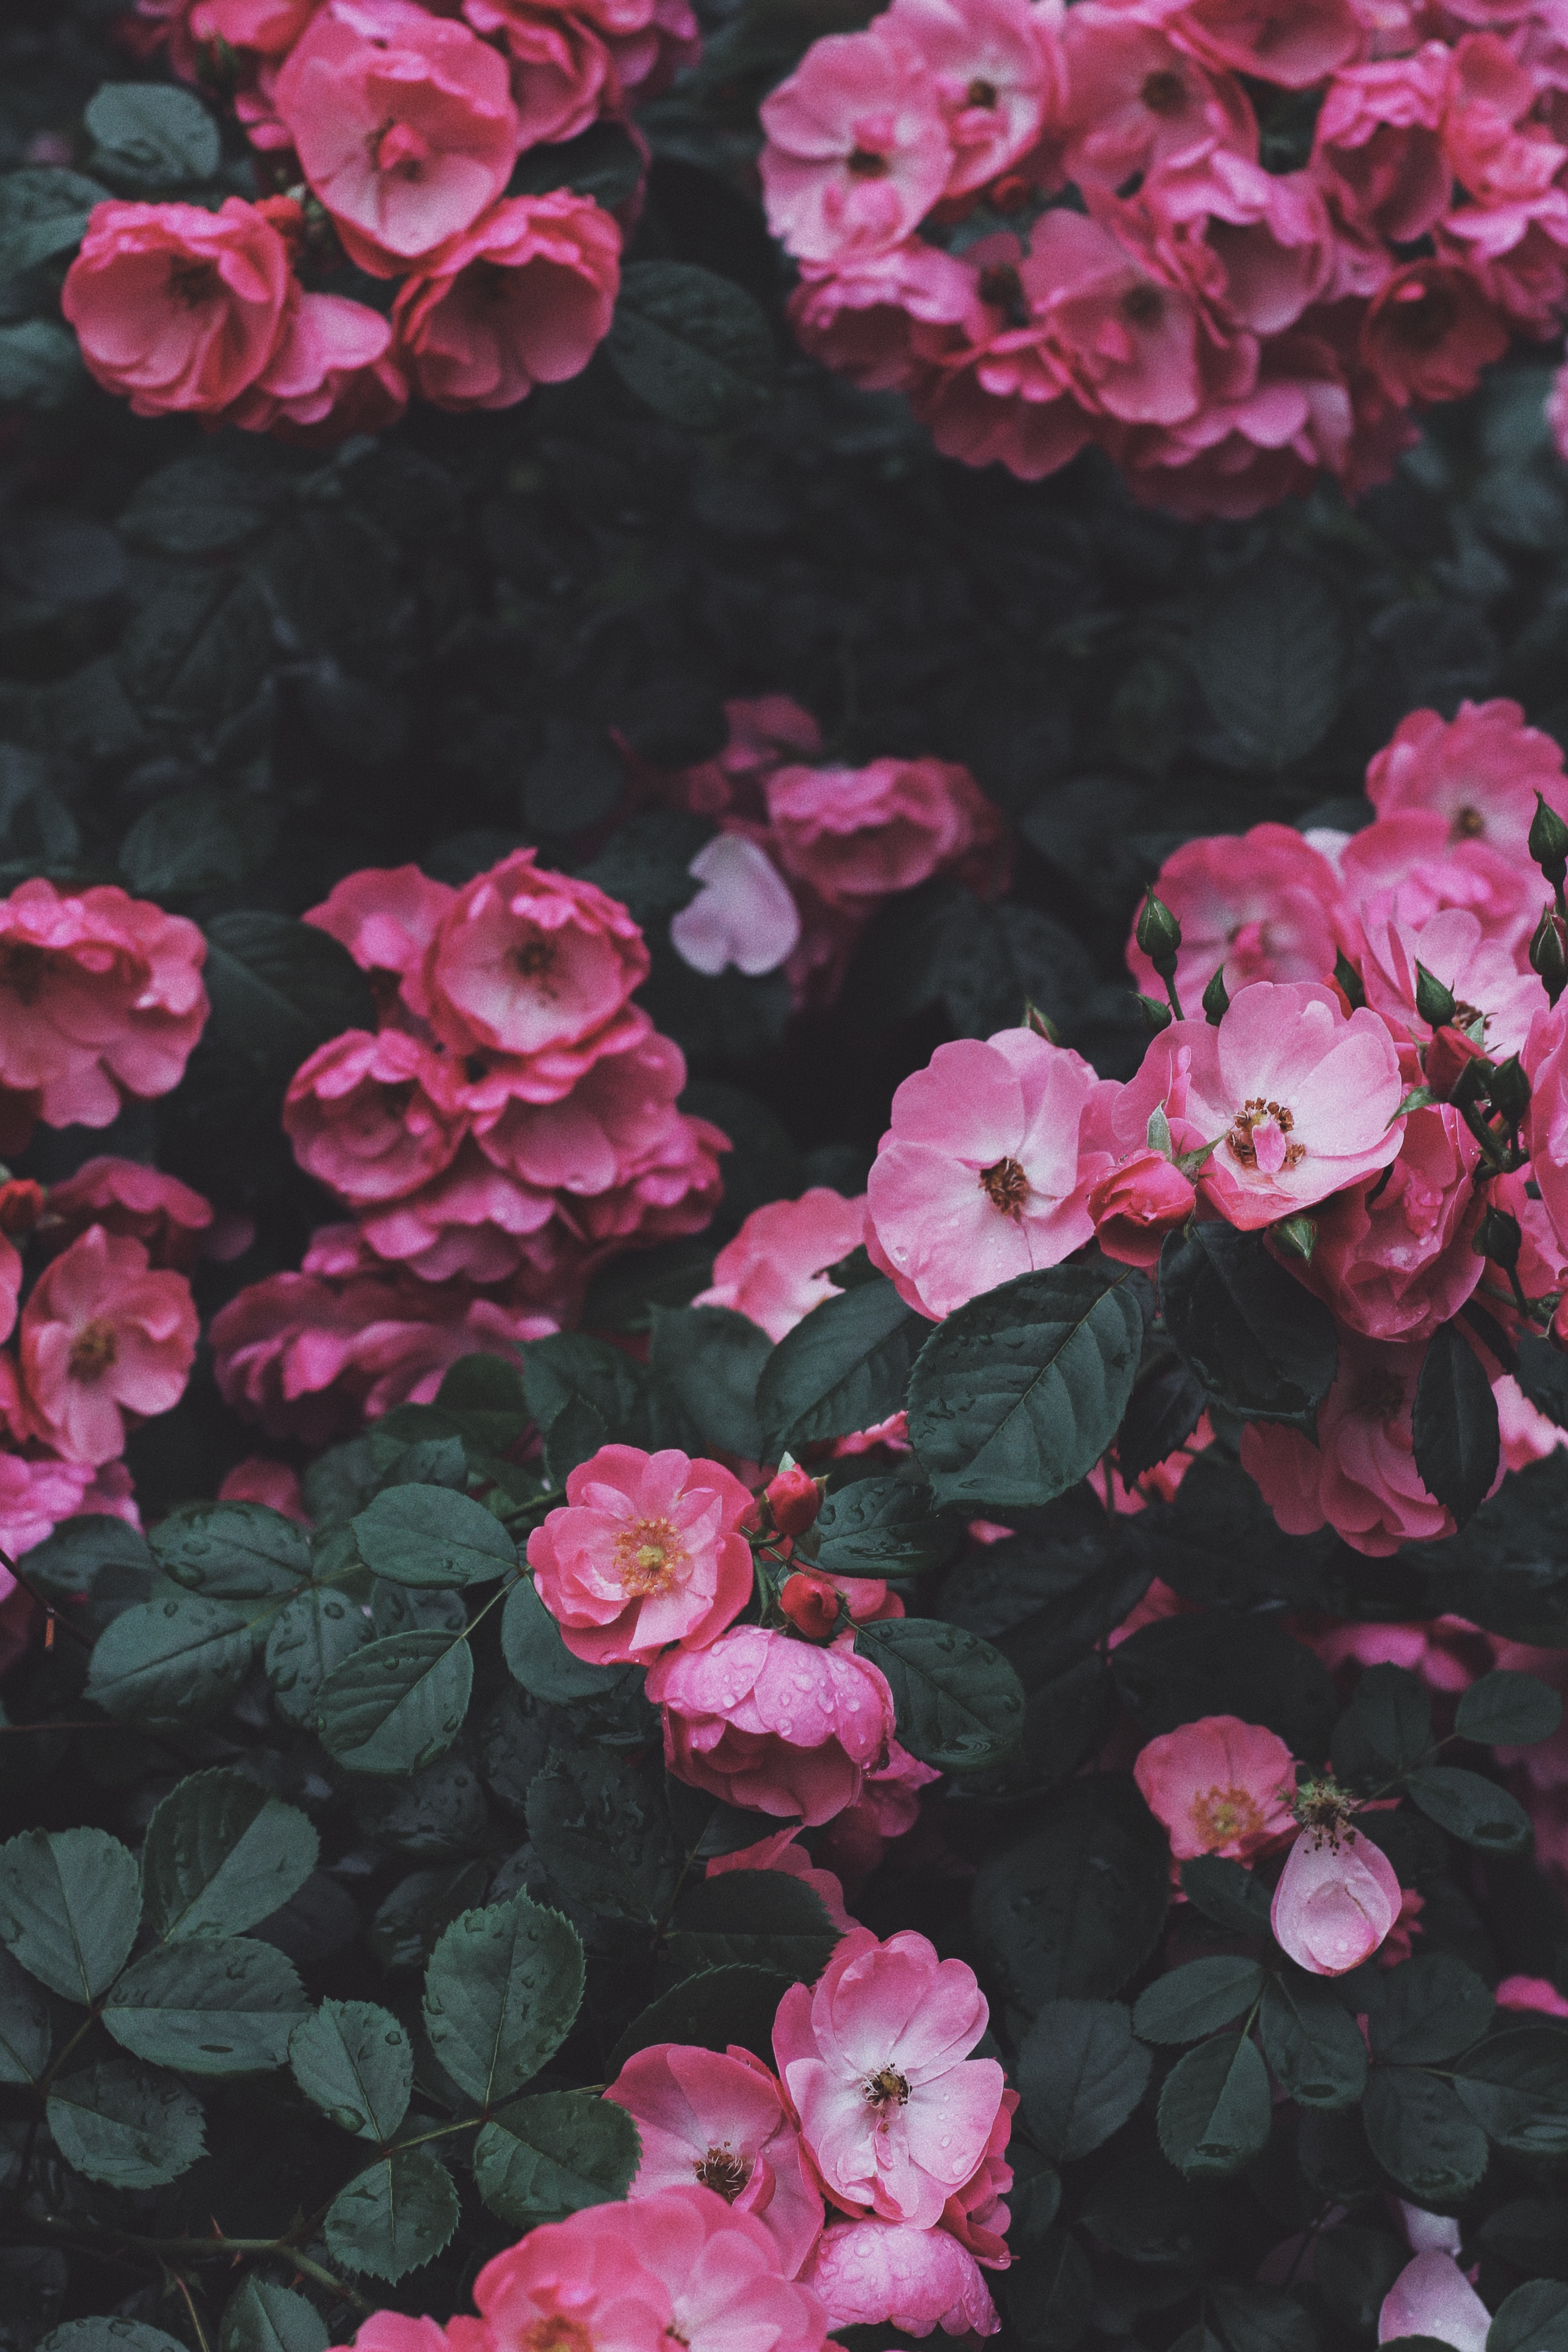 89049 download wallpaper Flowers, Pink, Bush, Bloom, Flowering, Wild Rose screensavers and pictures for free